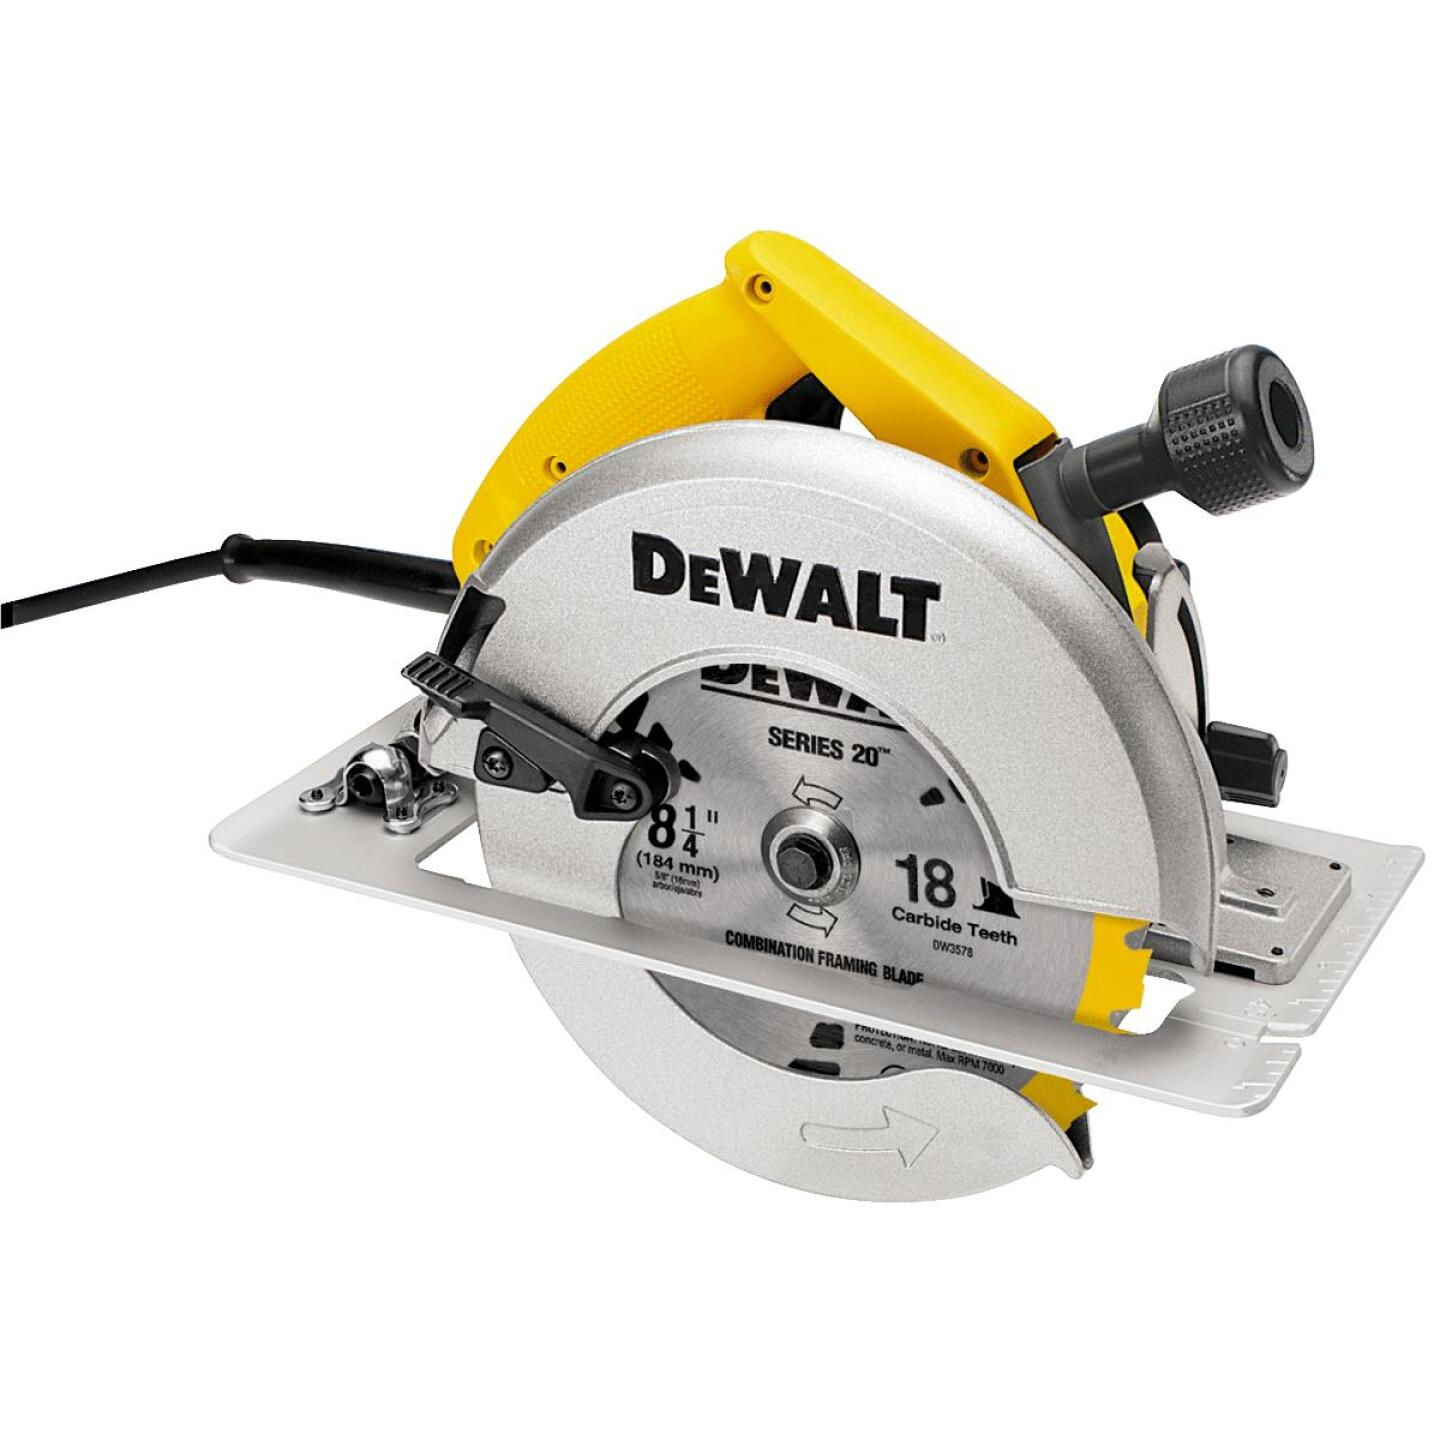 DeWalt 15-Amp 8-1/4 In. Circular Saw with Rear Pivot Depth of Cut Adjustment and Electric Brake Image 1